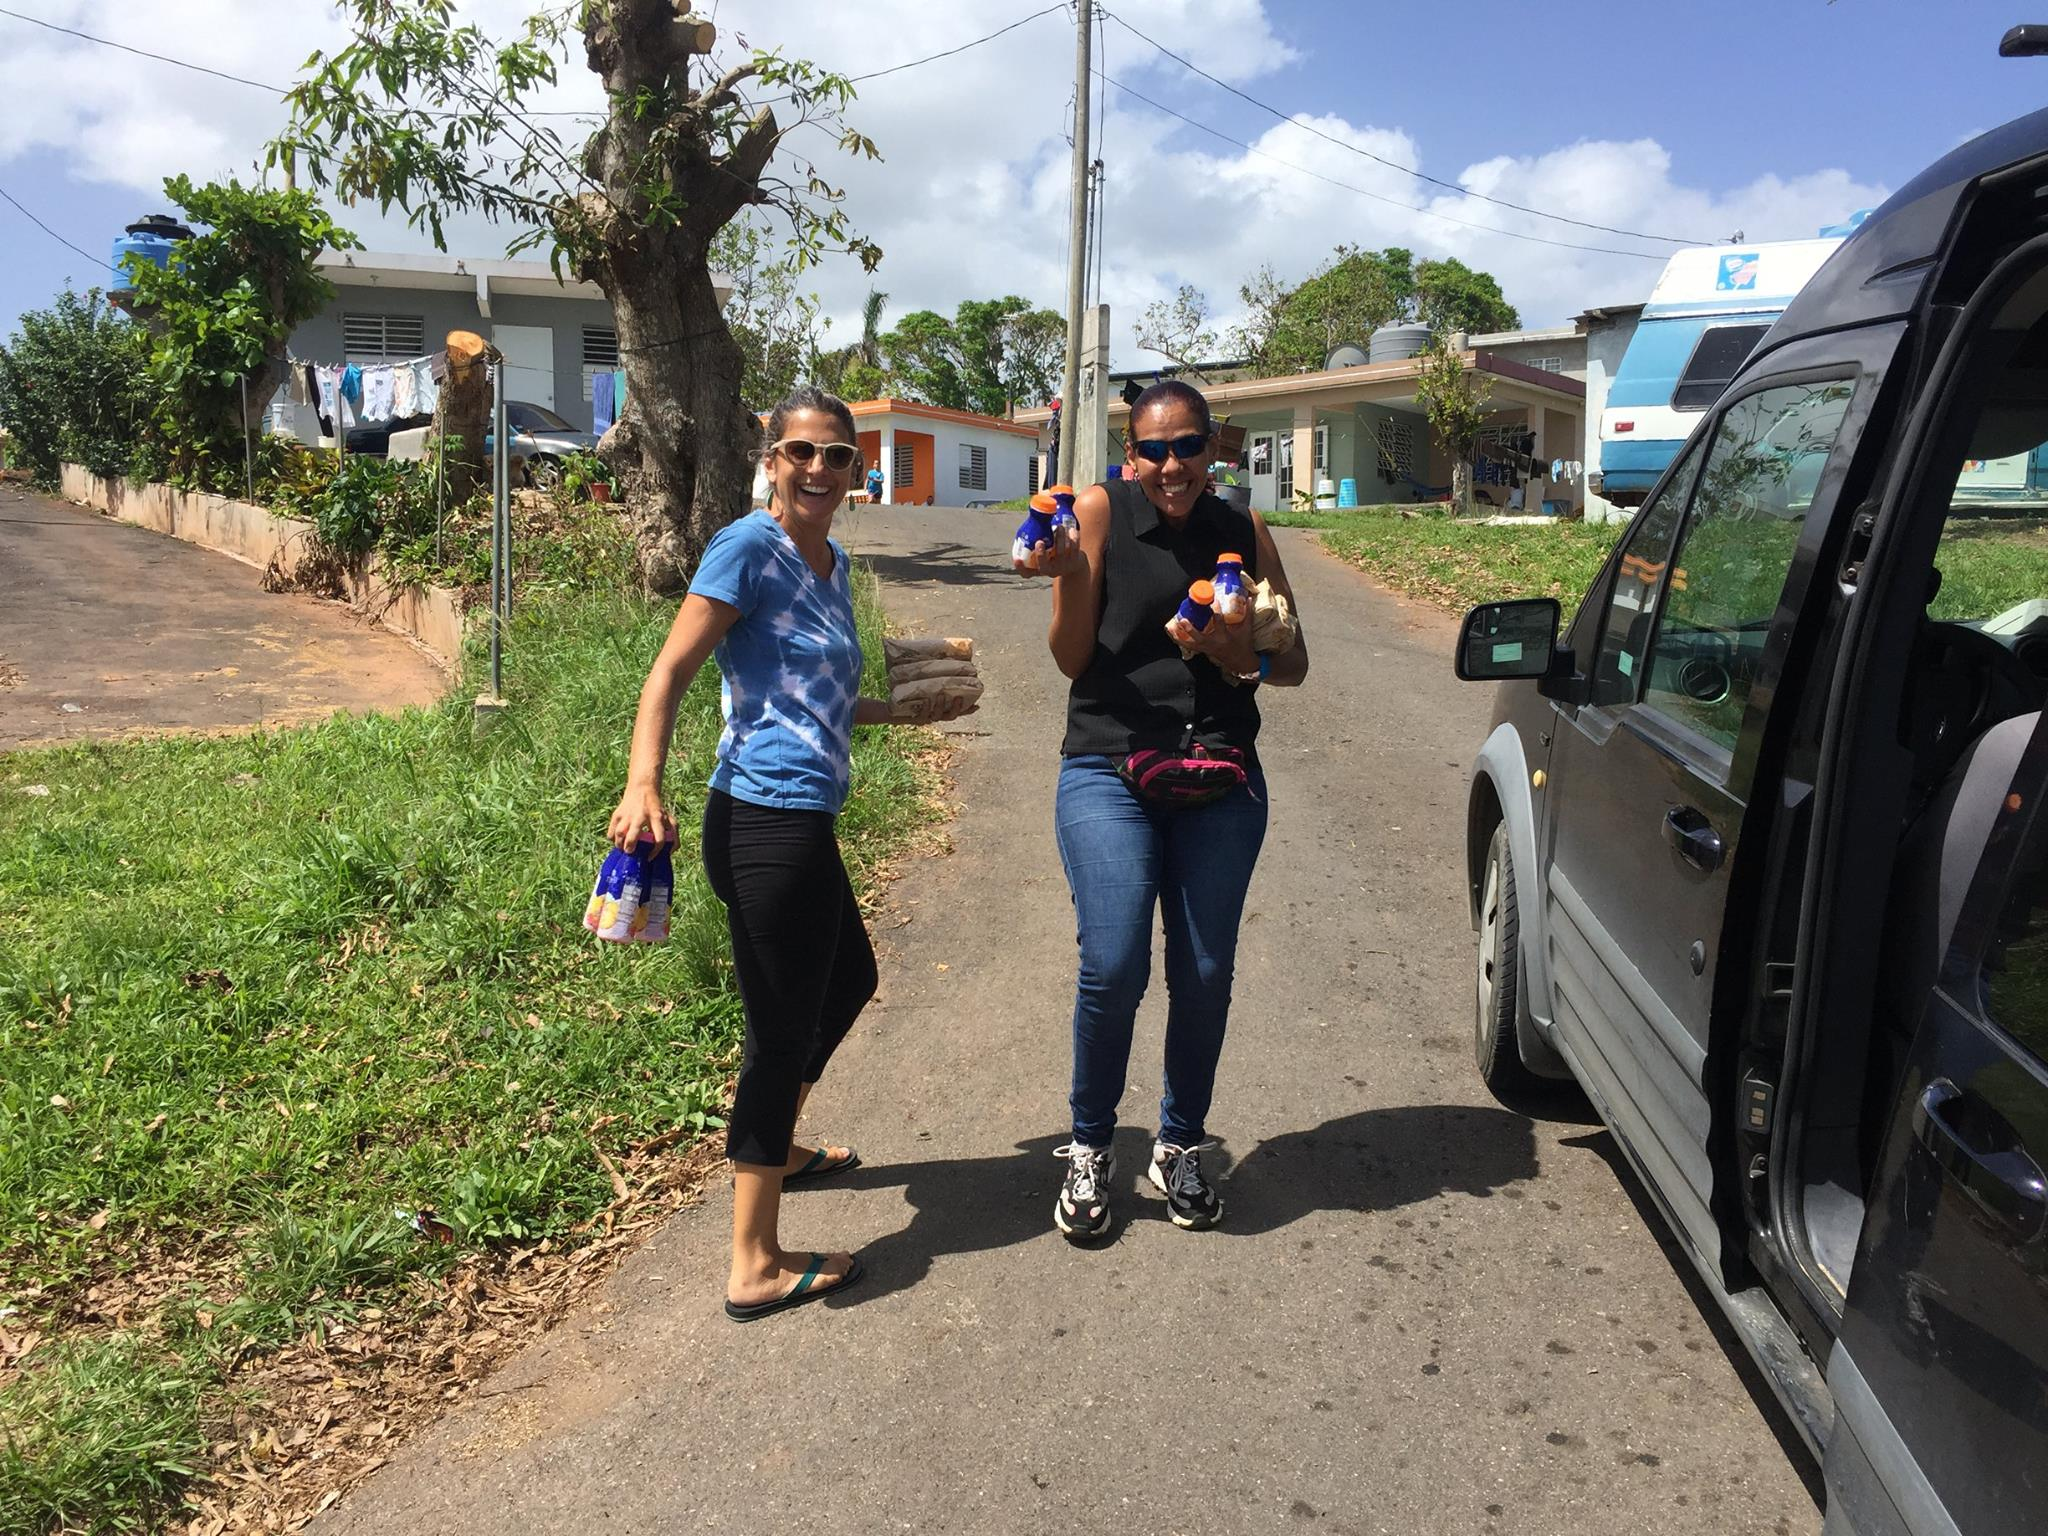 Vivienne Miranda + friend bringing food and drinks to neighborhoods in Anasco that have received no aid.